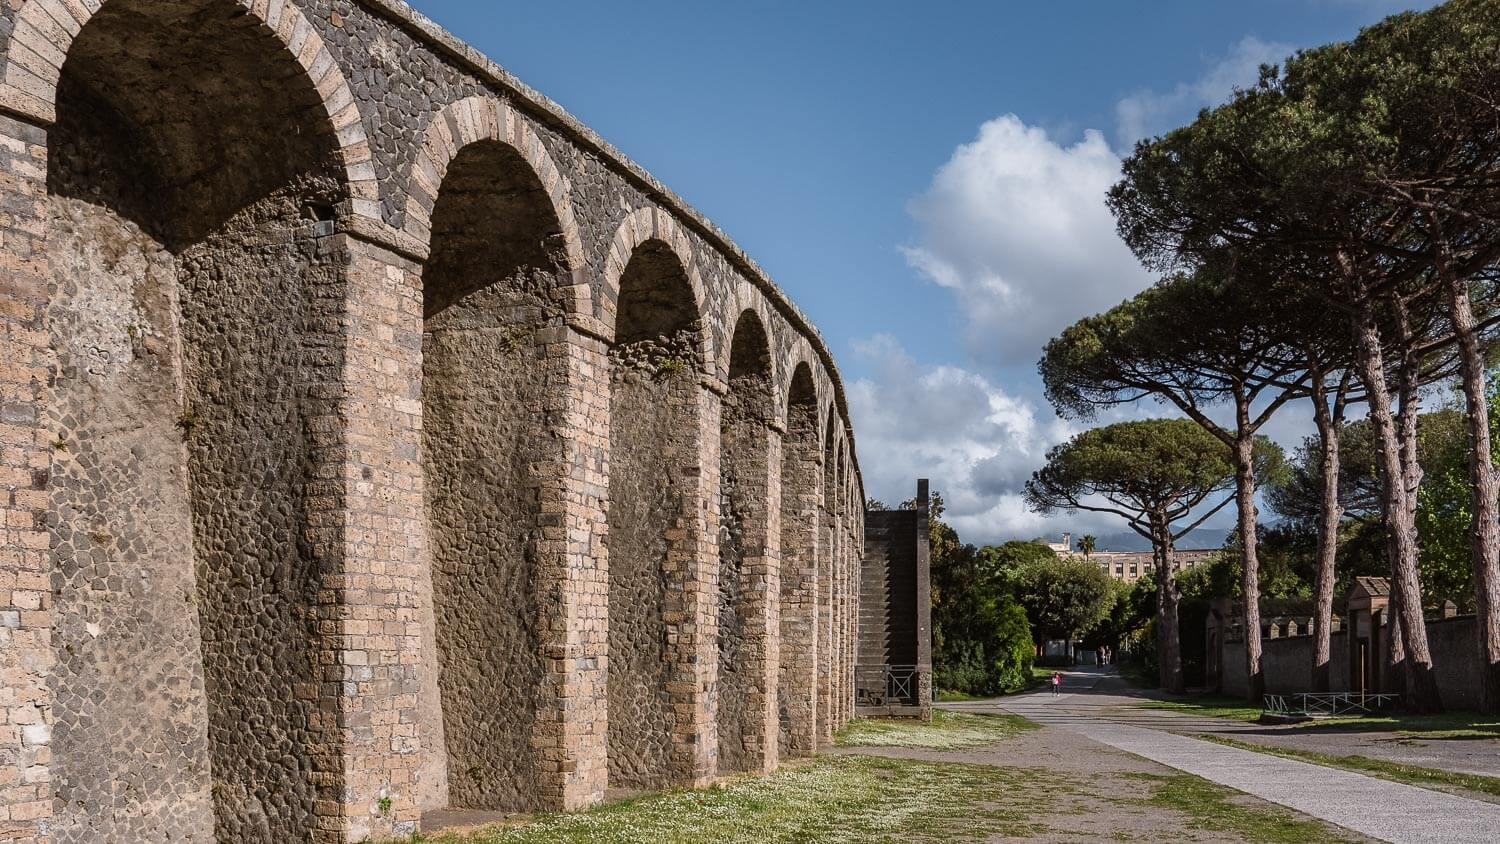 """Outside of the amphitheater in Pompeii. Travel photography and guide by © Natasha Lequepeys for """"And Then I Met Yoko"""". #pompeii #italy #fujifilm #travelphotography"""